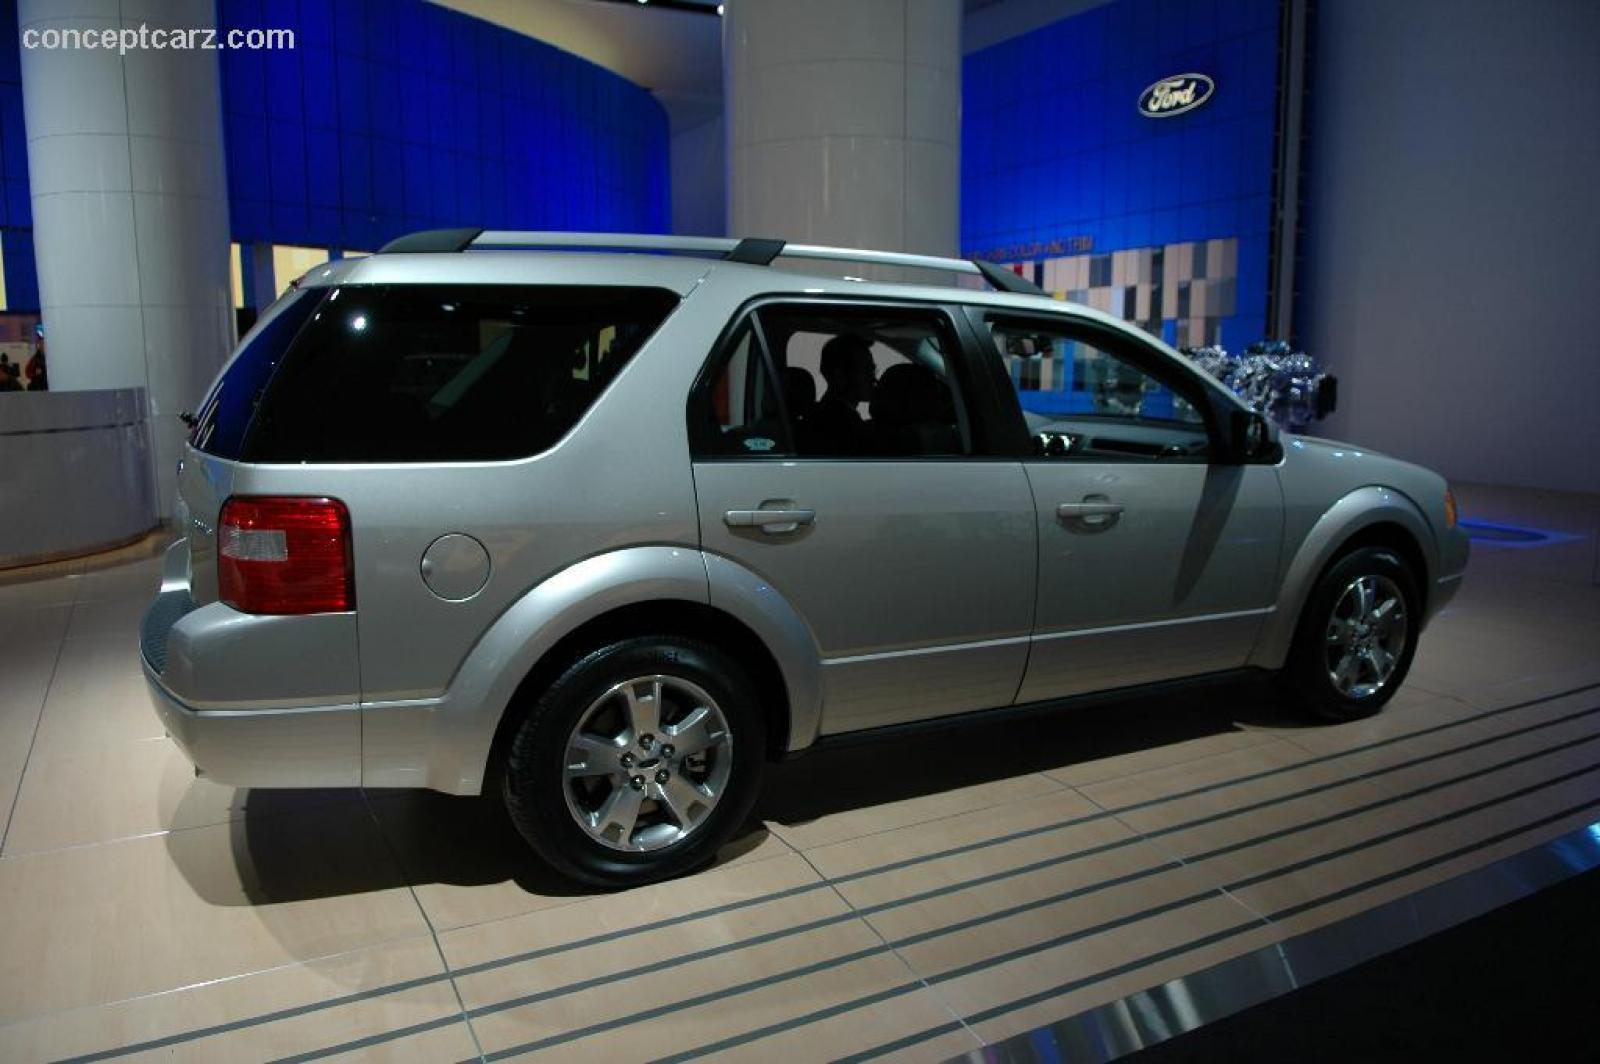 Ford Freestyle FX - High Resolution Image (2 of 6